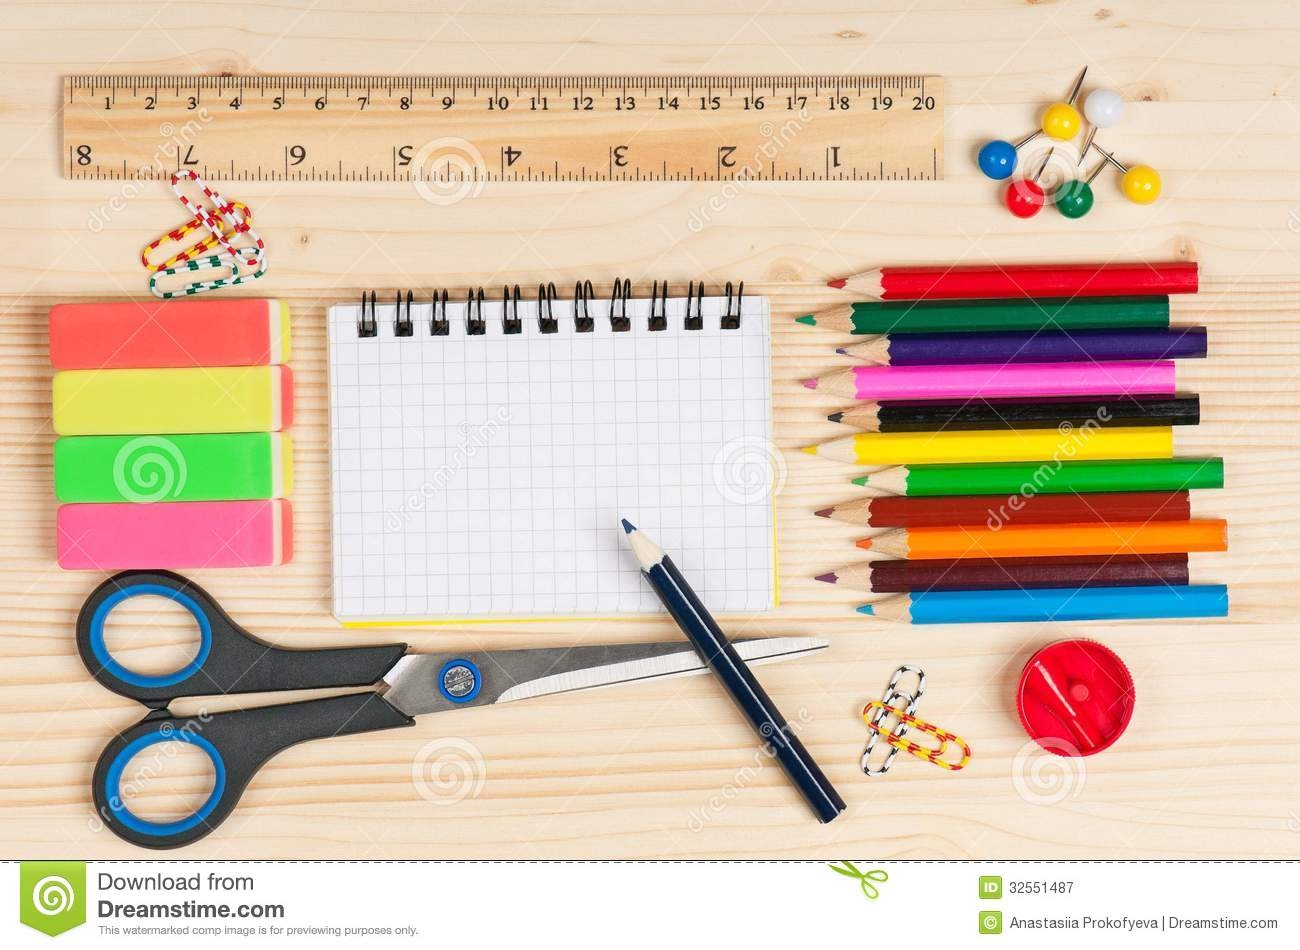 Writing materials clipart.